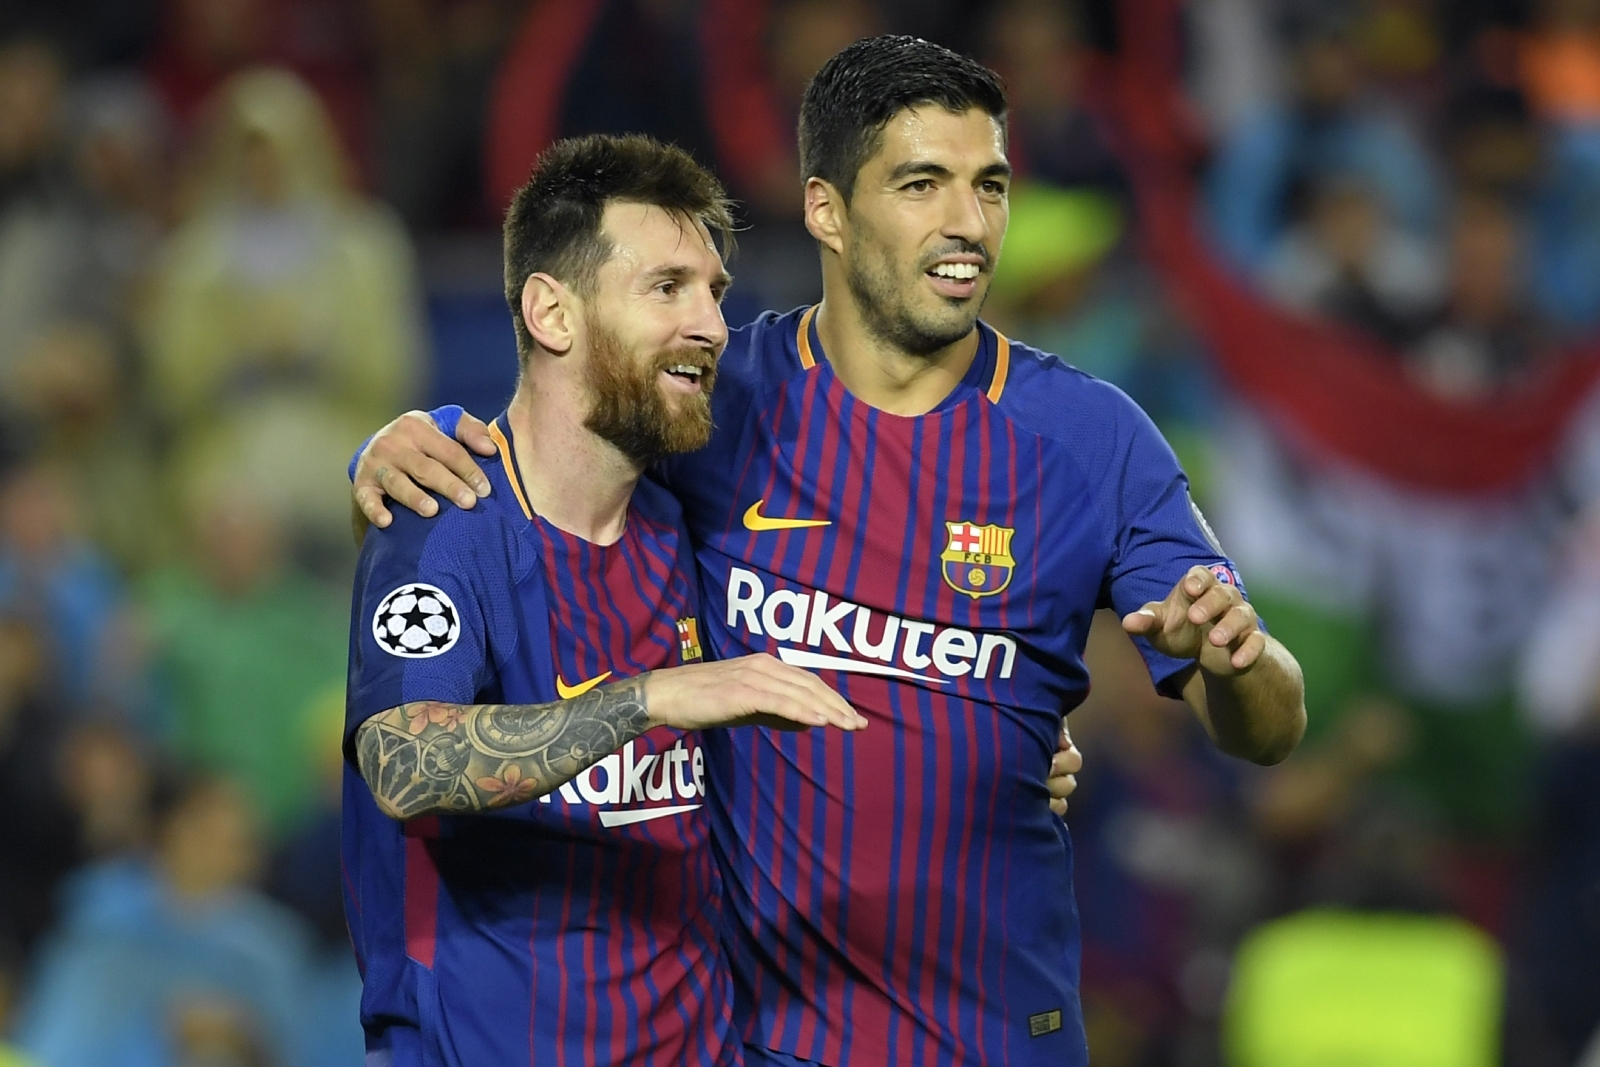 ernesto valverde with Lionel Messi Leads Barcelona 19 Man Squad Face Juventus Six Players Remain Out 1648083 on Lionel Messi Is A Treasure 1822307015 besides Argentina Want Messi Play Less Barca additionally Barcelona Target Yerry Mina Scores Goal Return Injury Amid Uncertainty Over January Move 1646100 moreover Barcelona Players Inform Josep Maria Bartomeu  plete Signing Liverpool Star Philippe Coutinho 1653690 as well Barcelonas January Signing Philippe Coutinho Not Worth 142m Says Liverpool Legend Jamie 1658550.